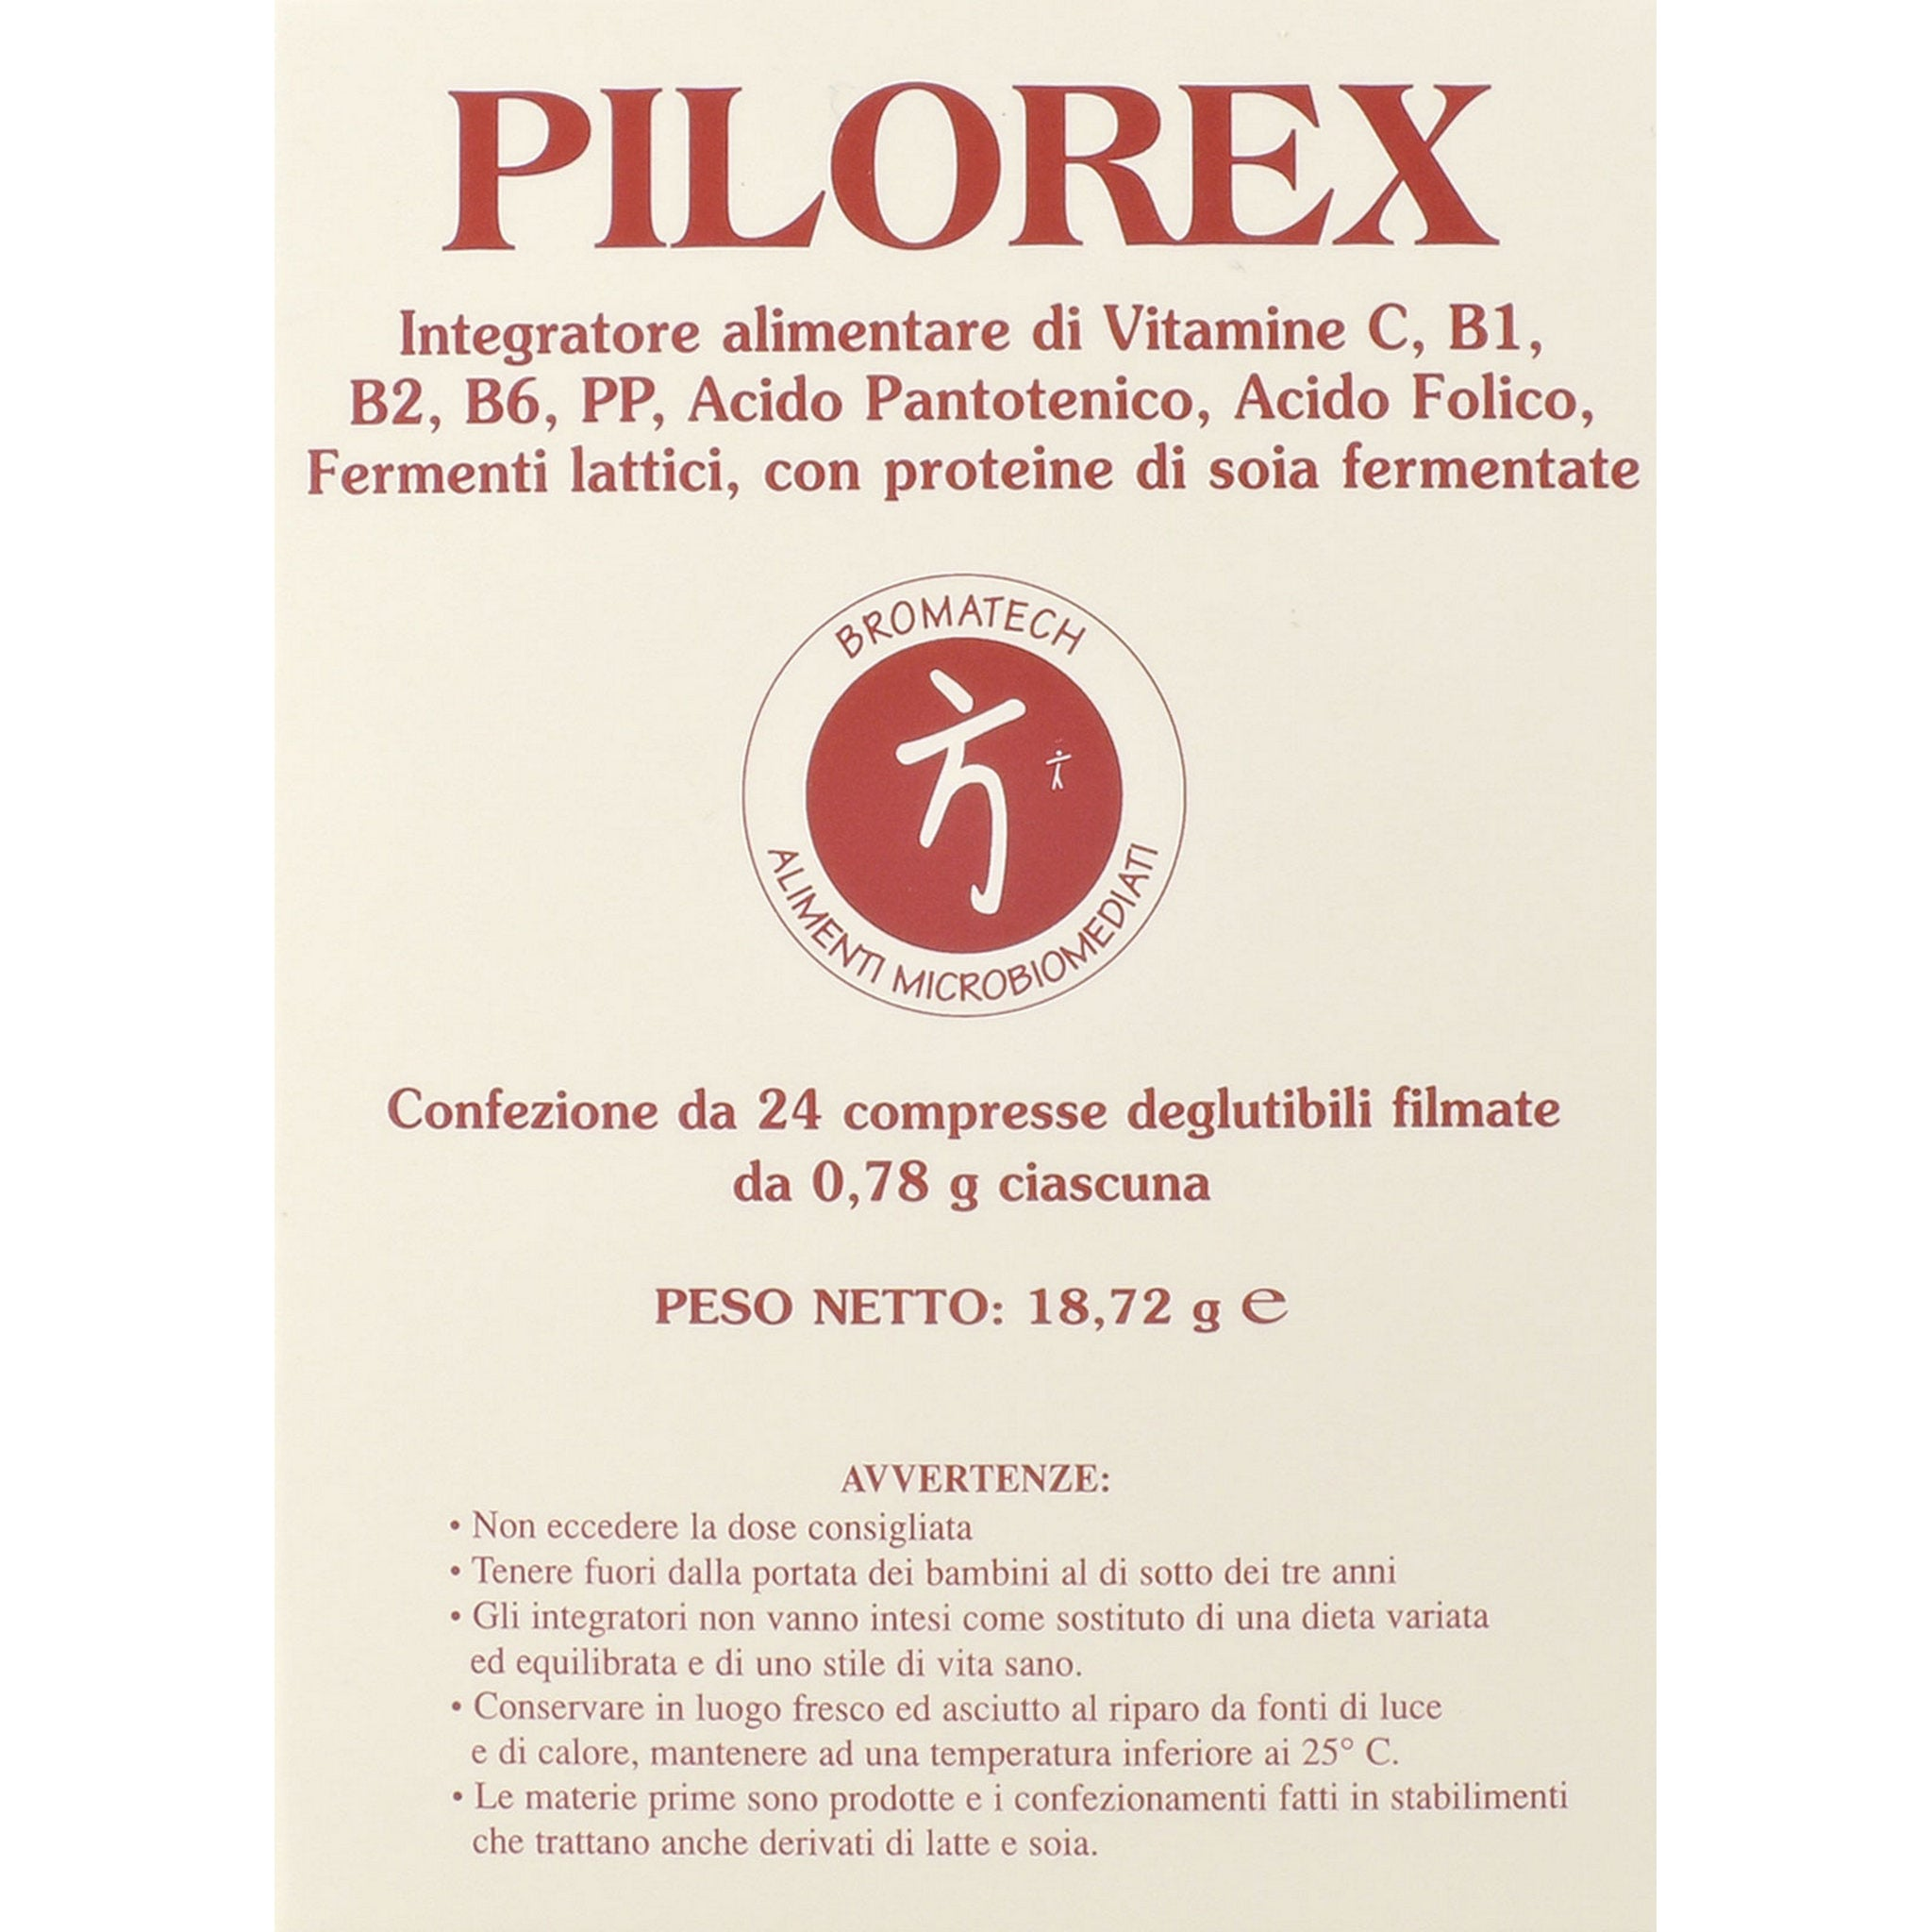 PILOREX 24 COMPRESSE